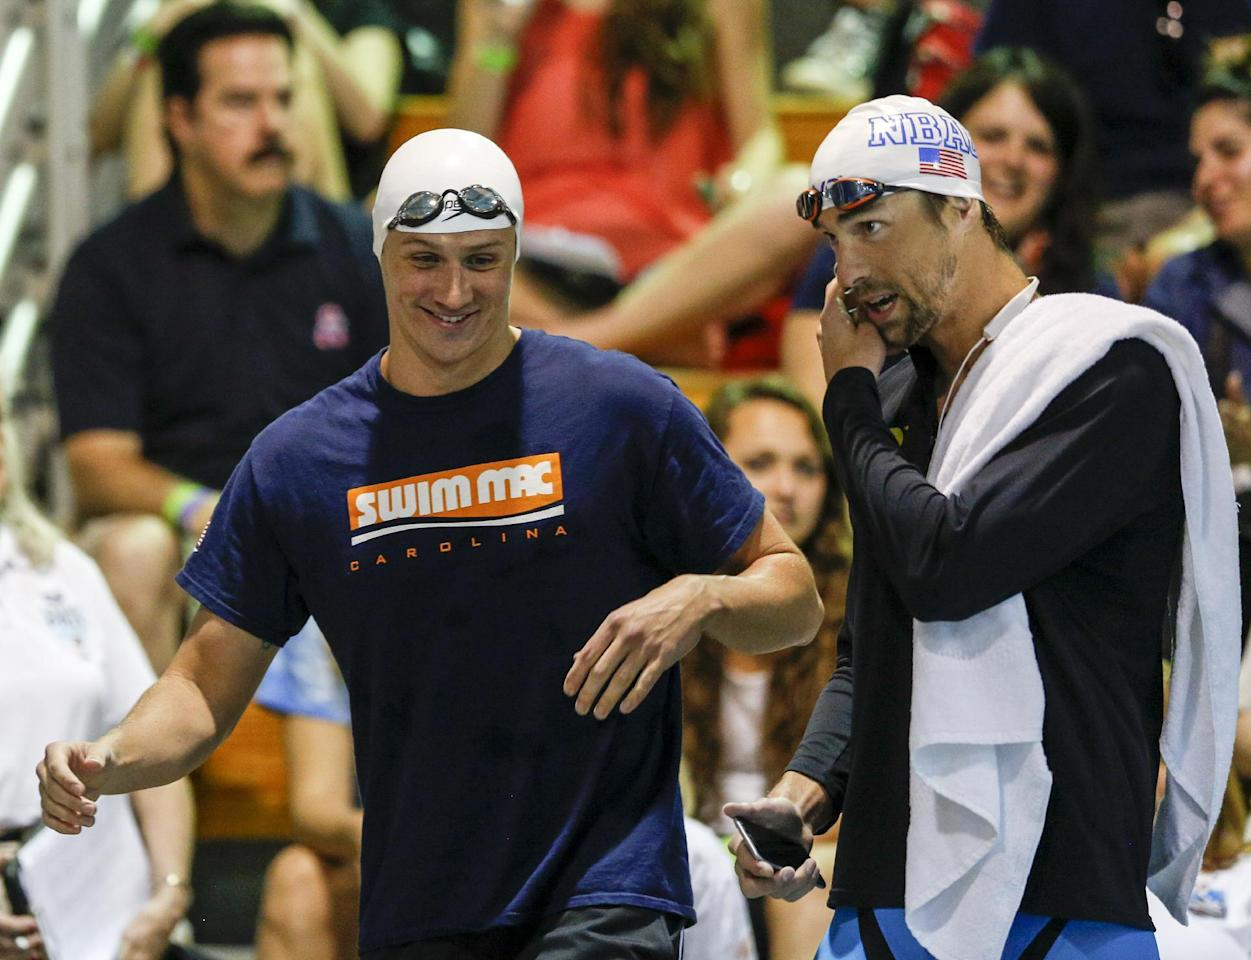 "A May 15, 2015, file photo, Ryan Lochte, left, and Michael Phelps talk before the start of the 100-meter butterfly final at the Arena Pro Swim Series meet in Charlotte, N.C. Add Phelps' name to the list of Americans who were less than amused by teammate Lochte's post-competition, early morning drunken antics at the Rio Olympics. ""I did have a talk with him about two days before about not doing anything bad,"" said Phelps, who retired after the Summer Games as the most-decorated Olympian of all time. ""I told him: `Just keep your head on straight. Have fun.'"" (AP Photo/Nell Redmond, File)"